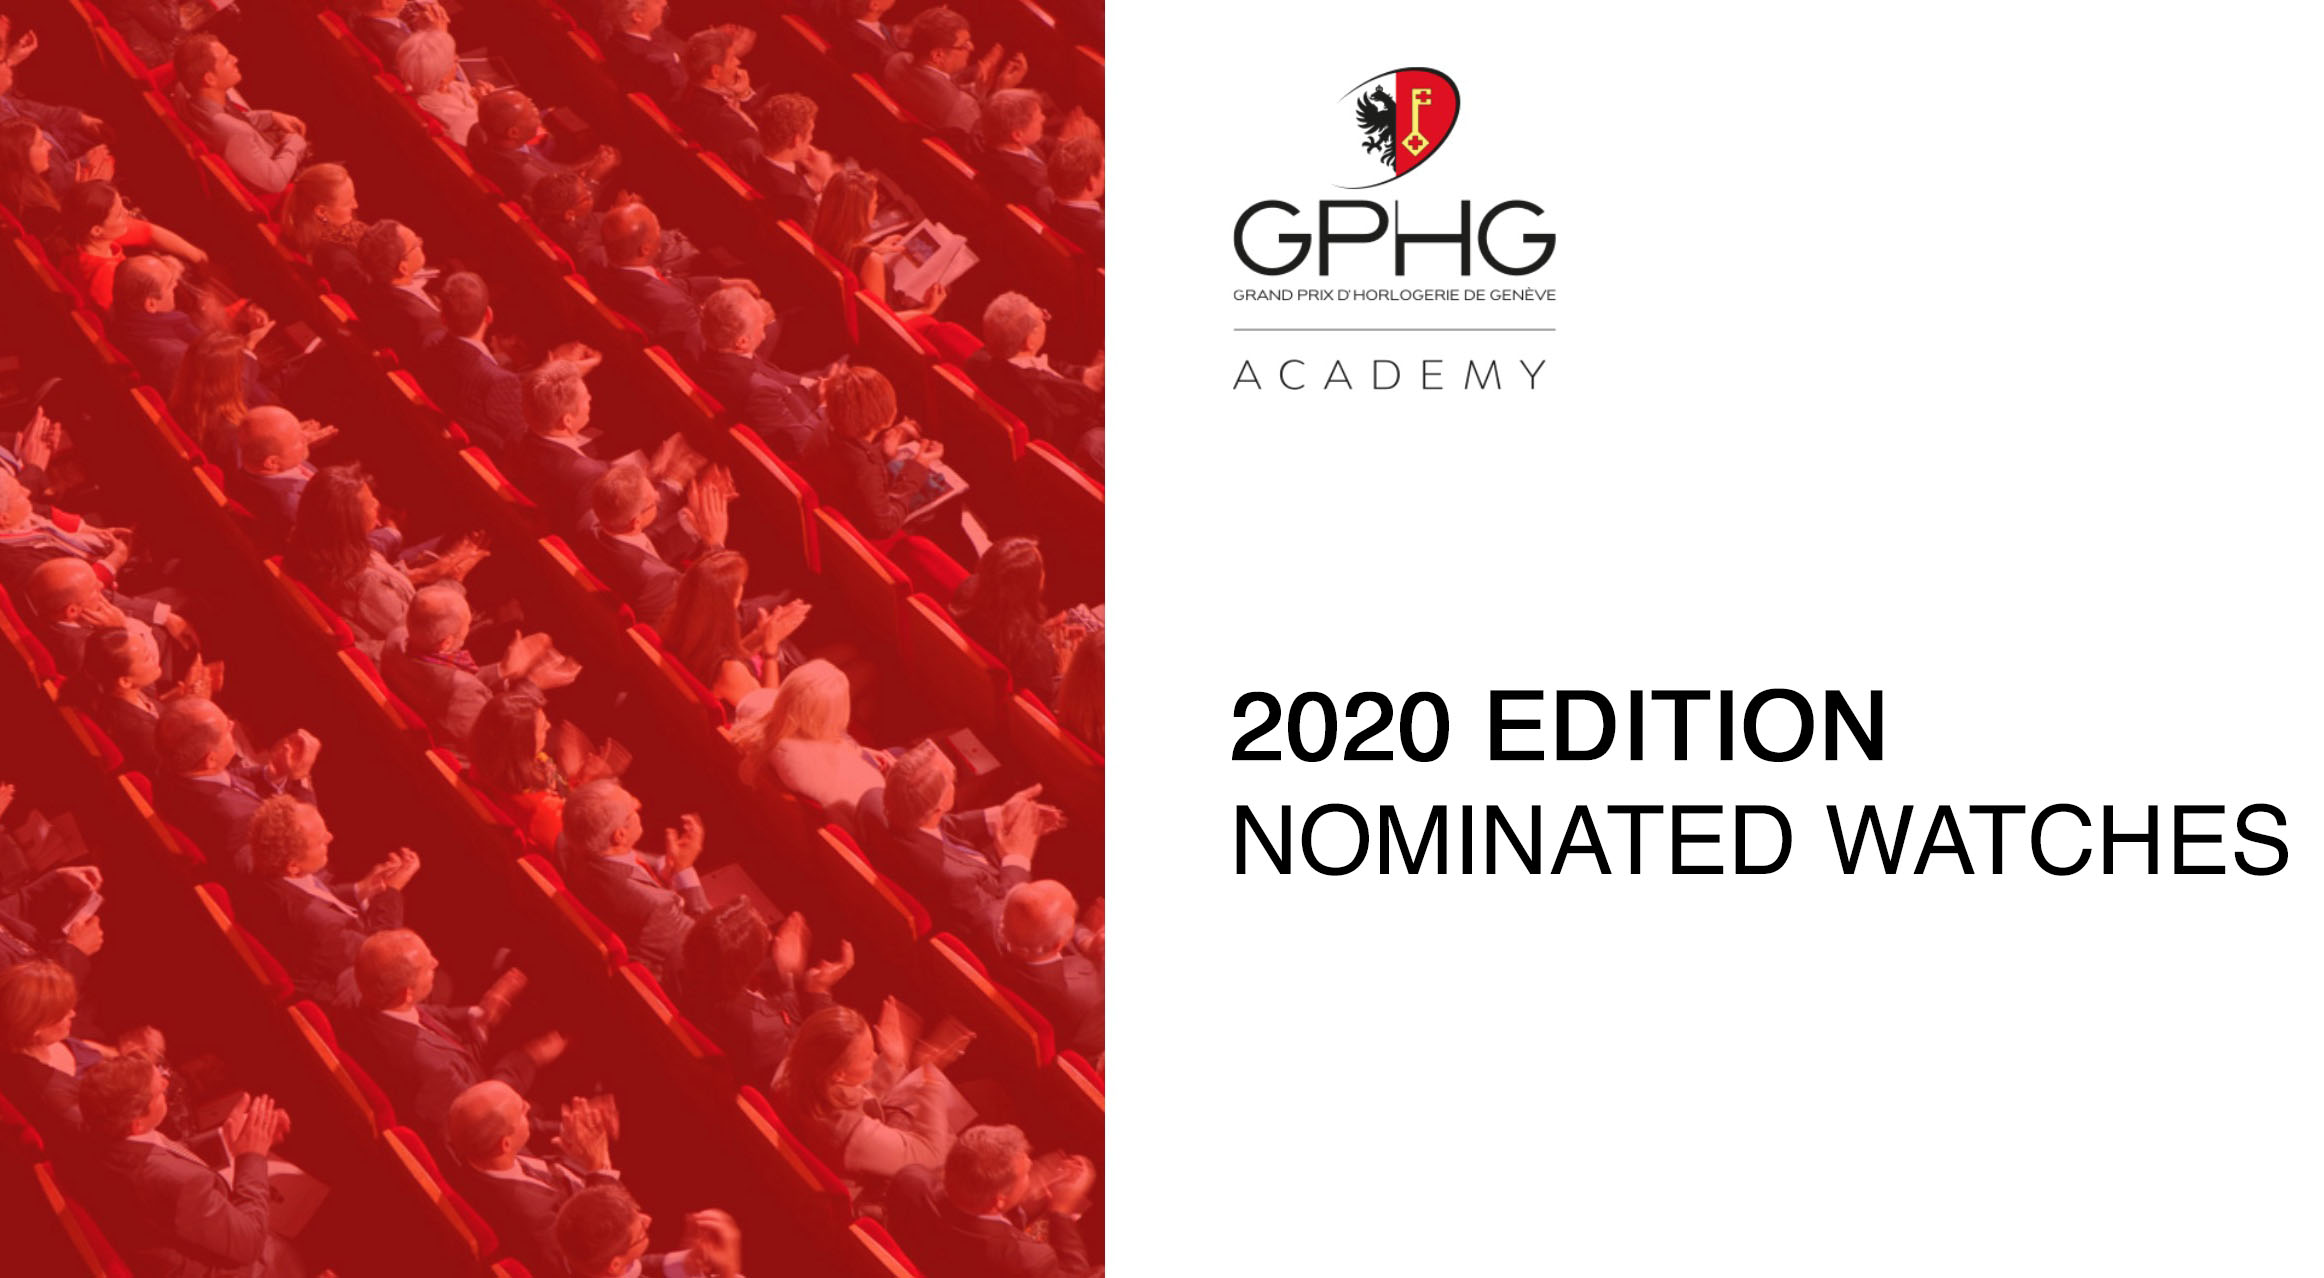 Grand Prix d'Horlogerie de Genève GPHG Academy Nominated Watches 2020